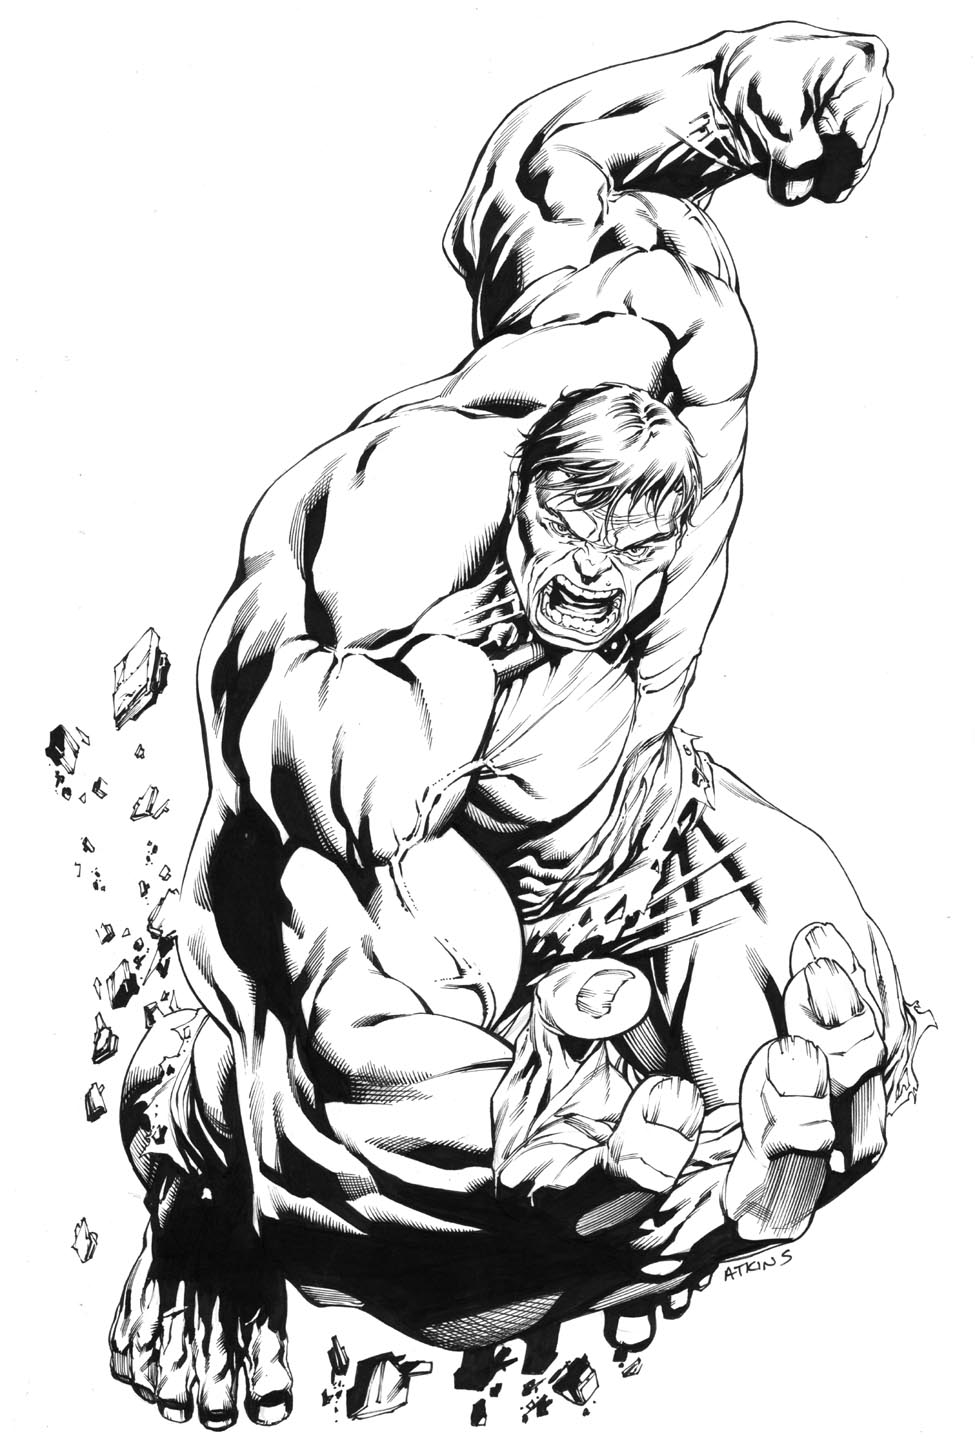 Marvel comics coloring pages printable ~ Robert Atkins Art: Strongest there is.....